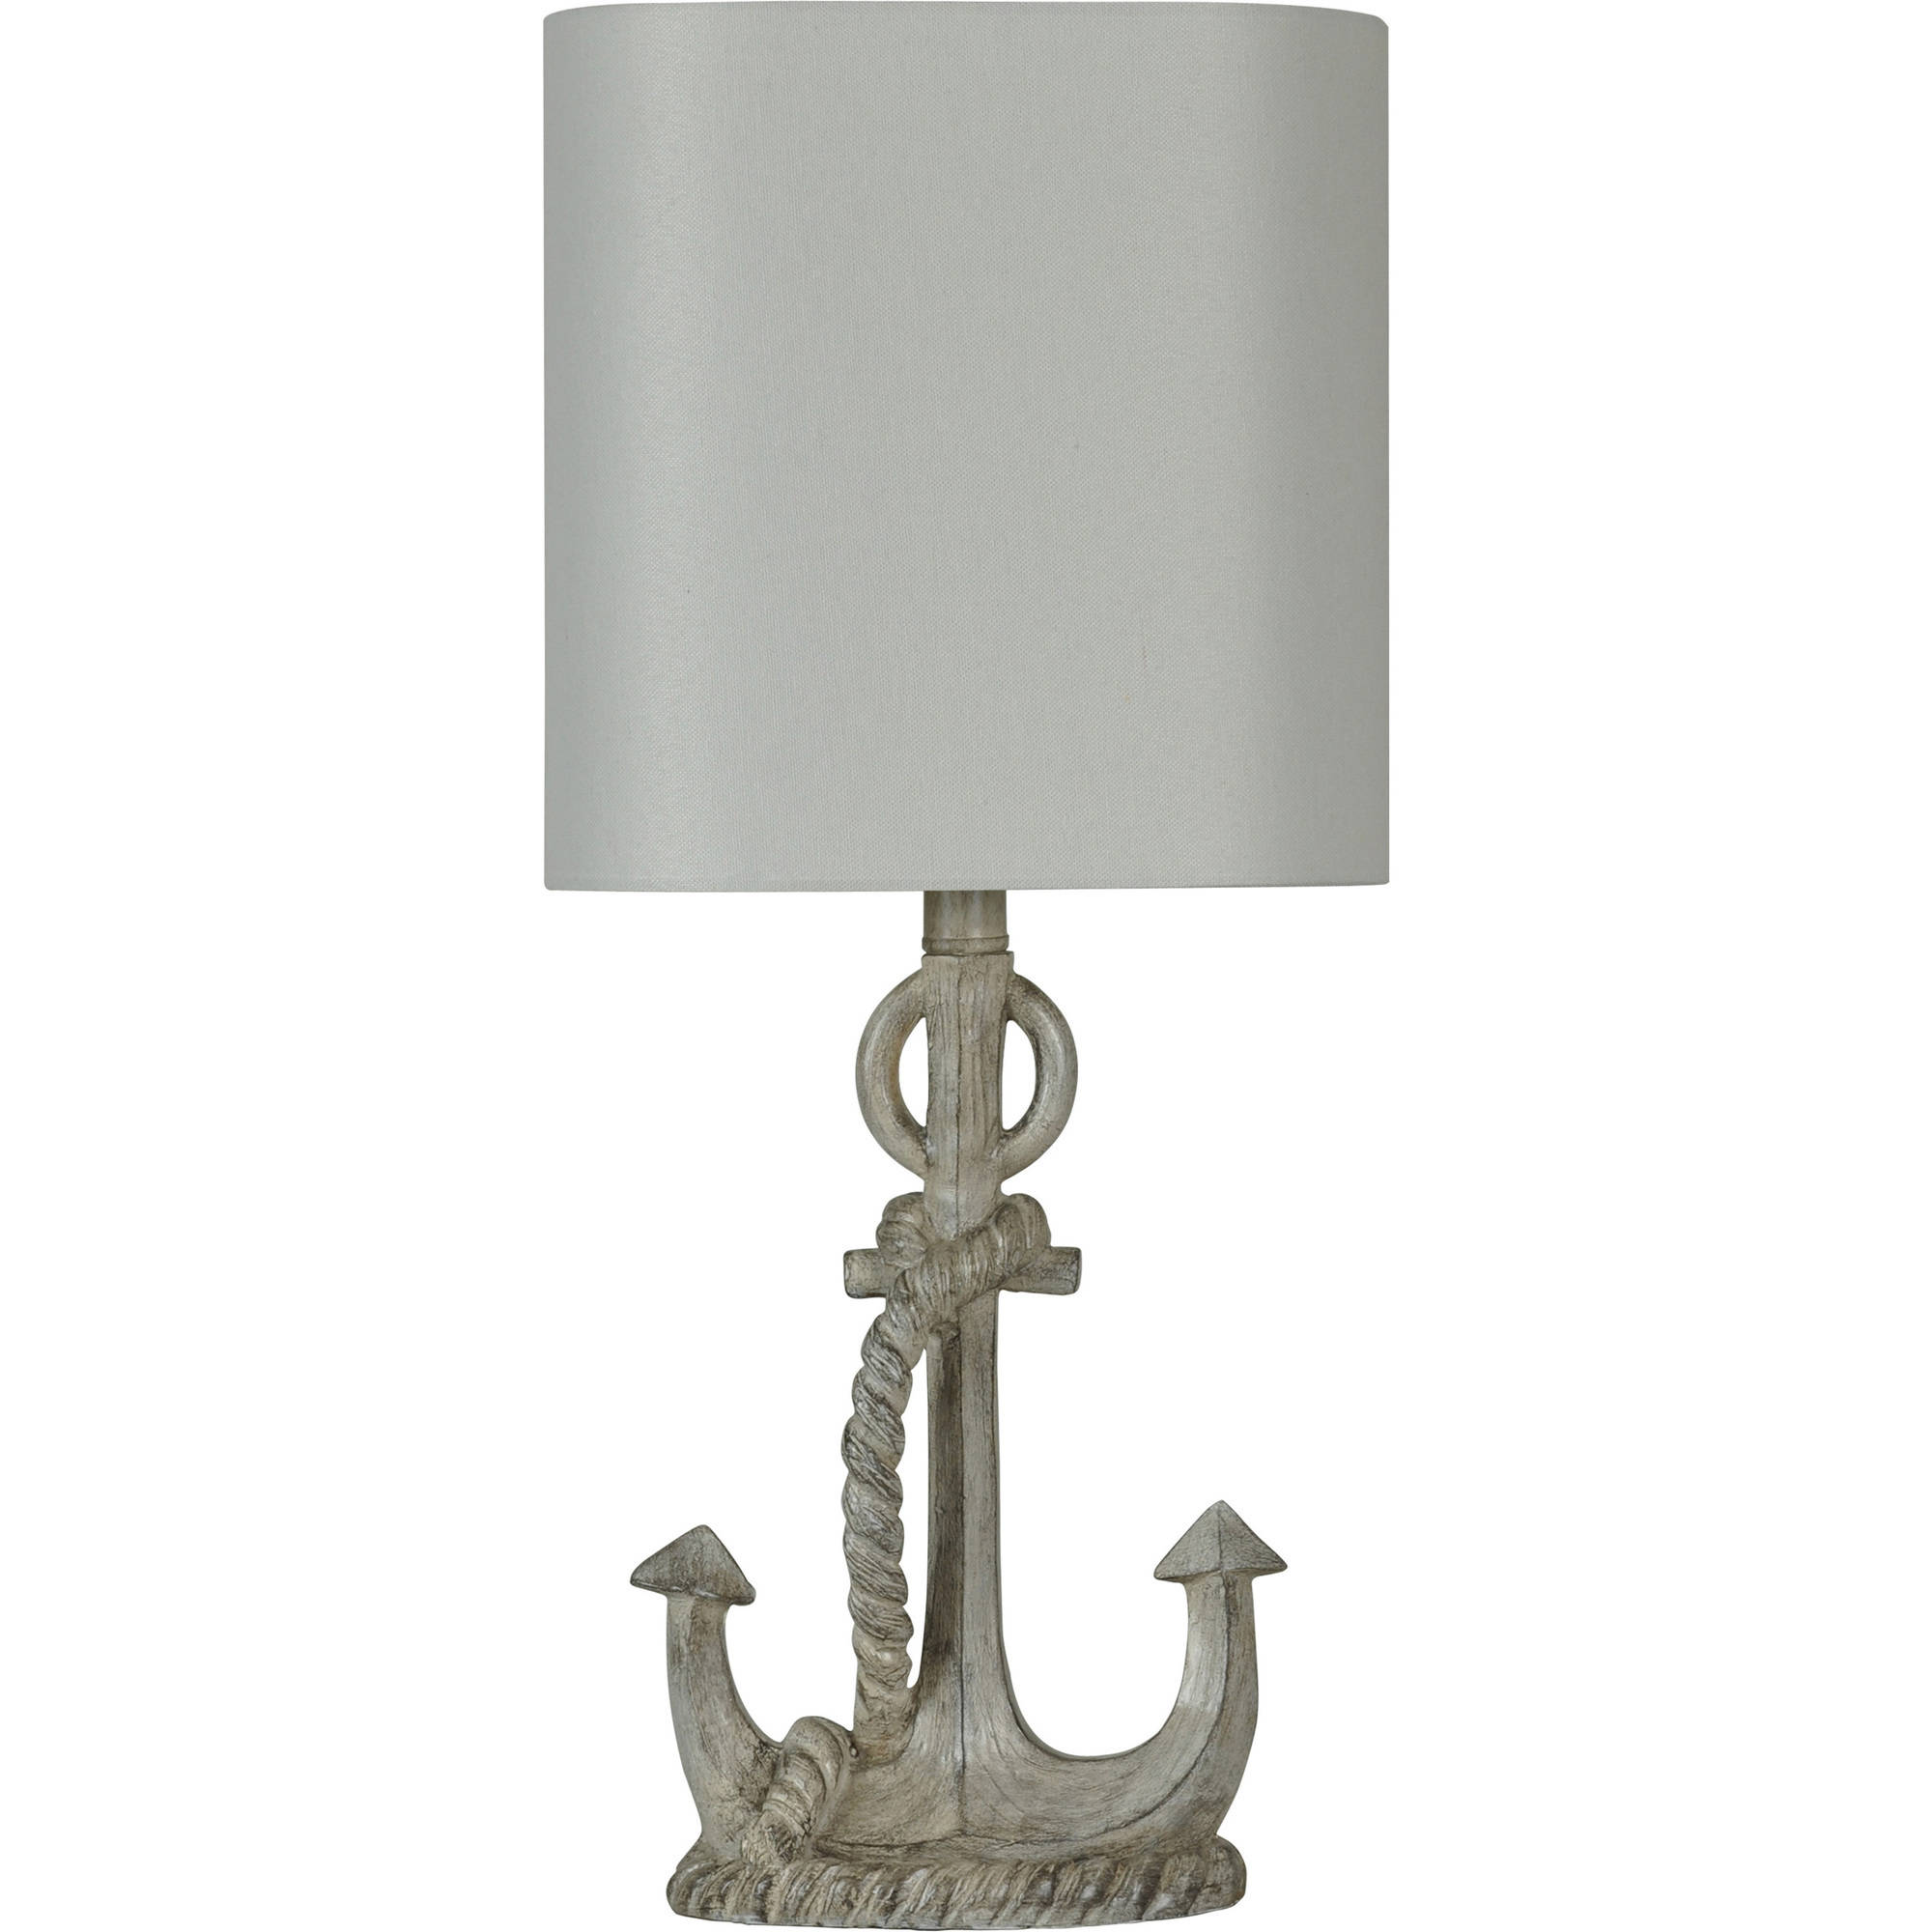 Charming Better Homes And Gardens Anchor Lamp With Shade, Distressed Grey